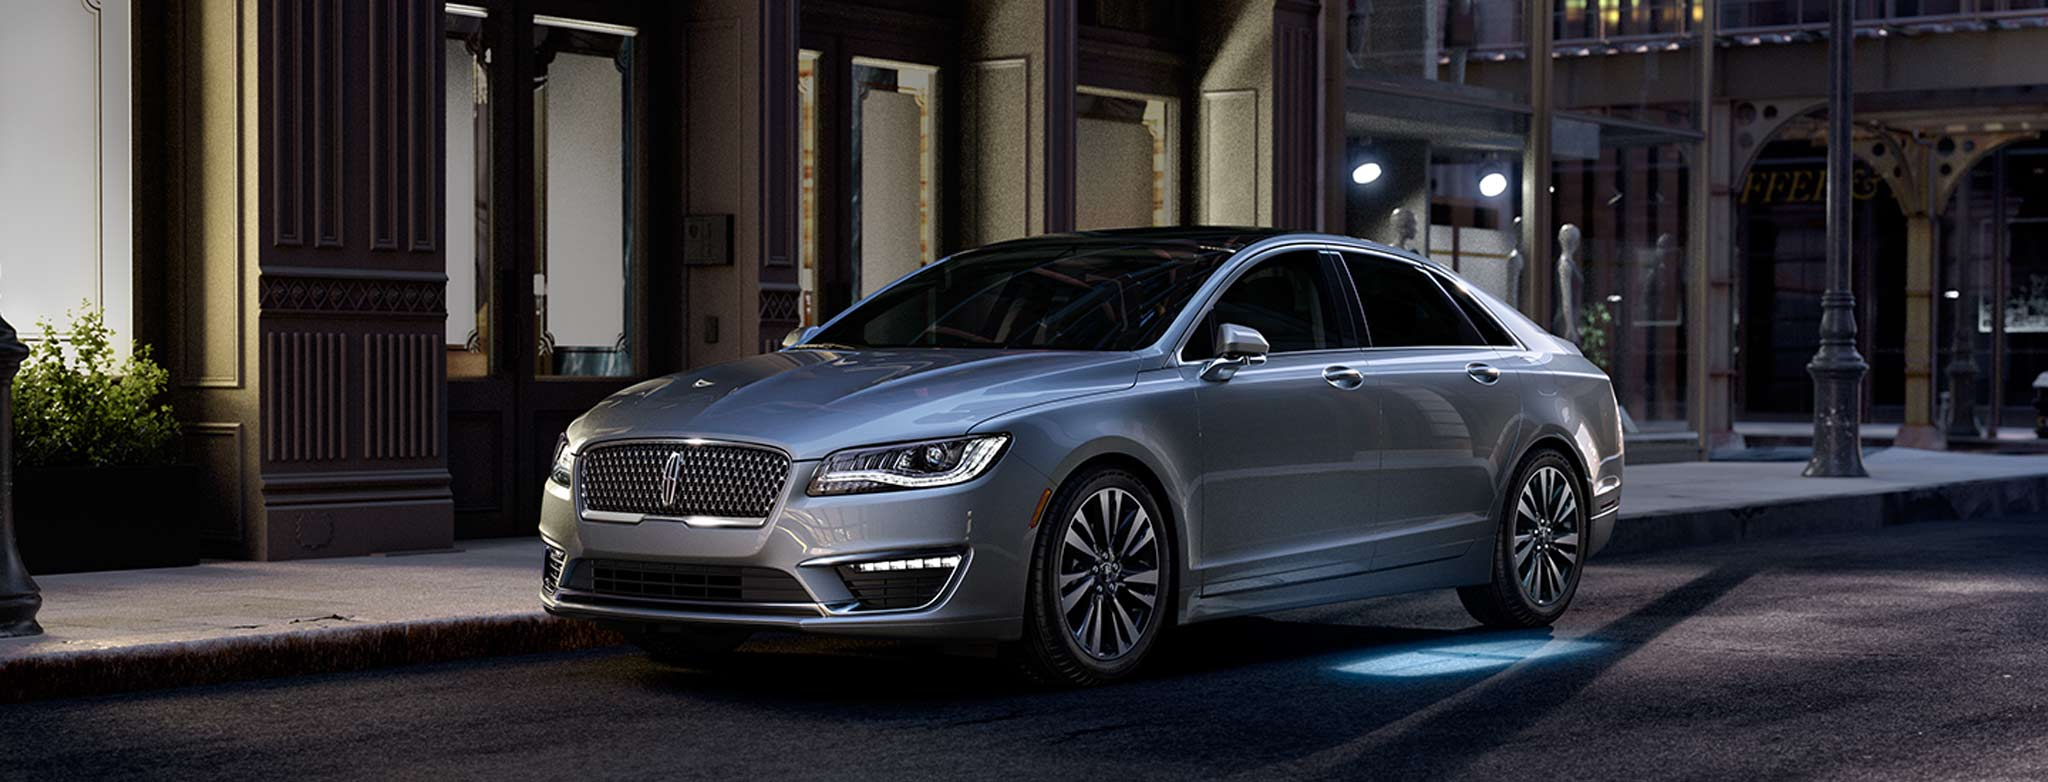 Lincoln Mkz #16